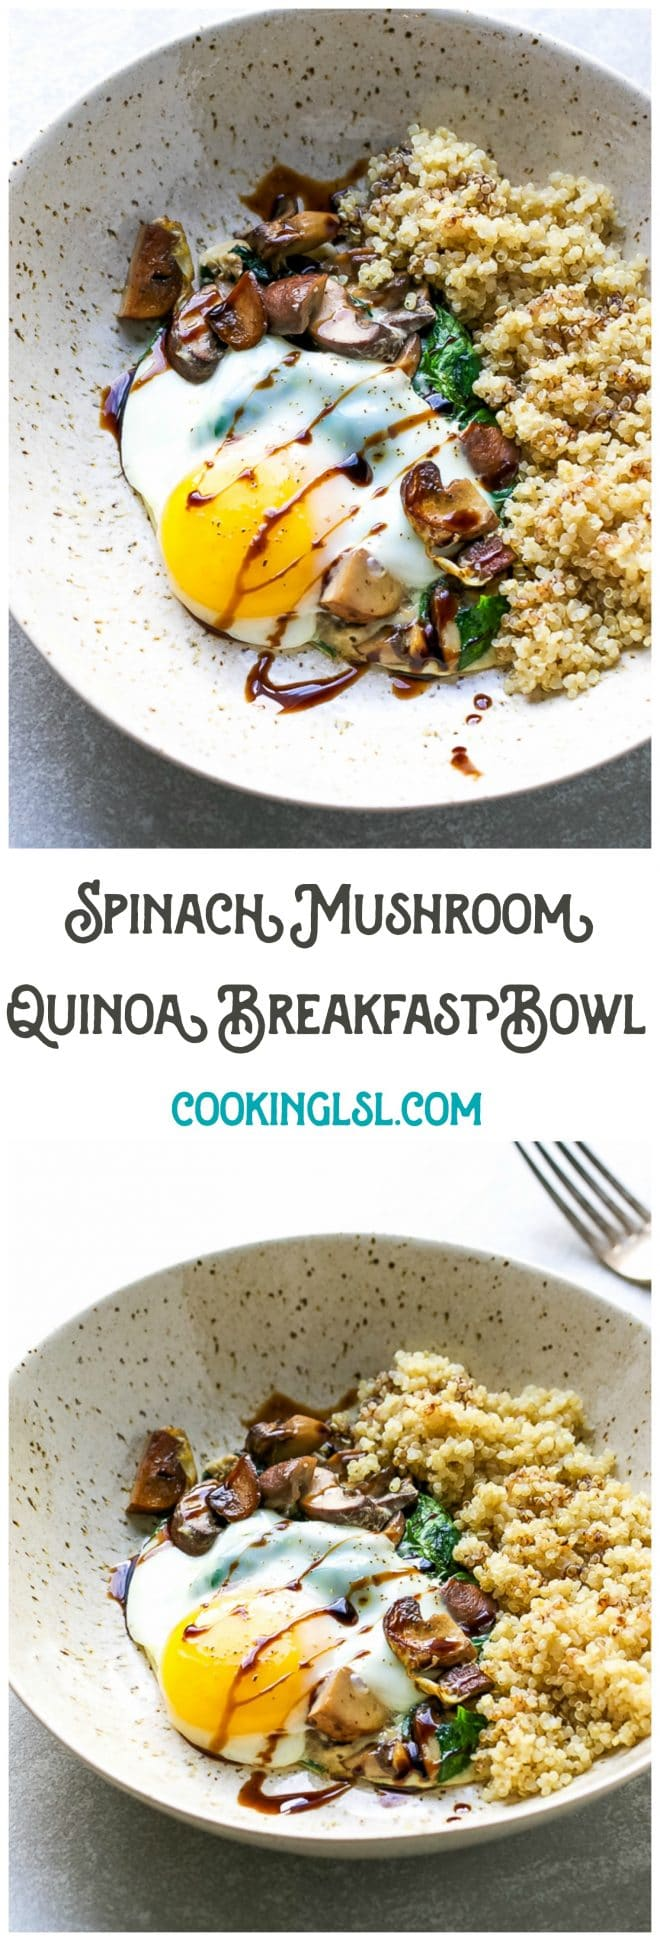 Spinach mushroom quinoa breakfast bowl recipe